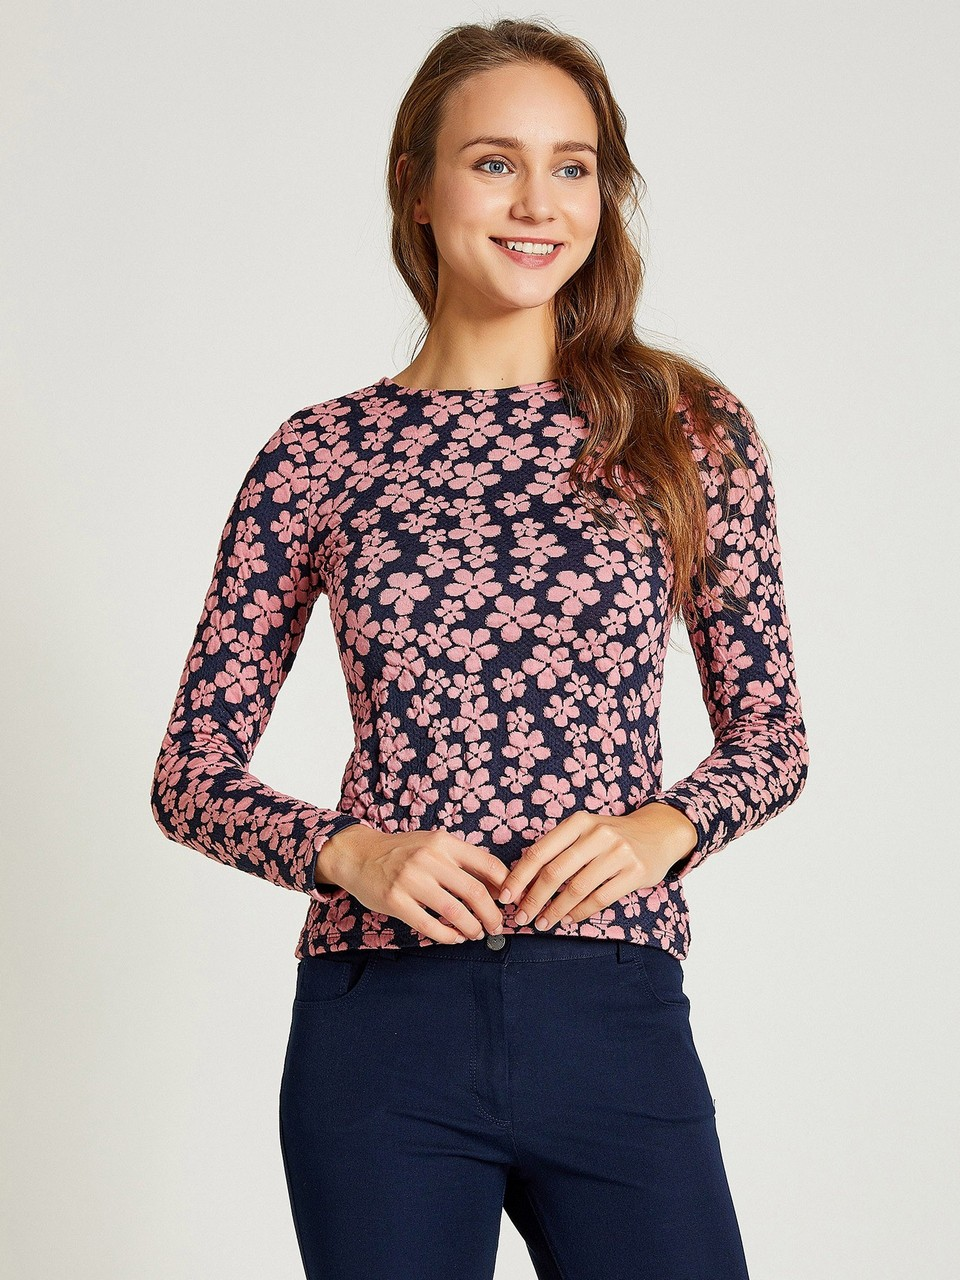 Floral Patterned Cotton Blouse